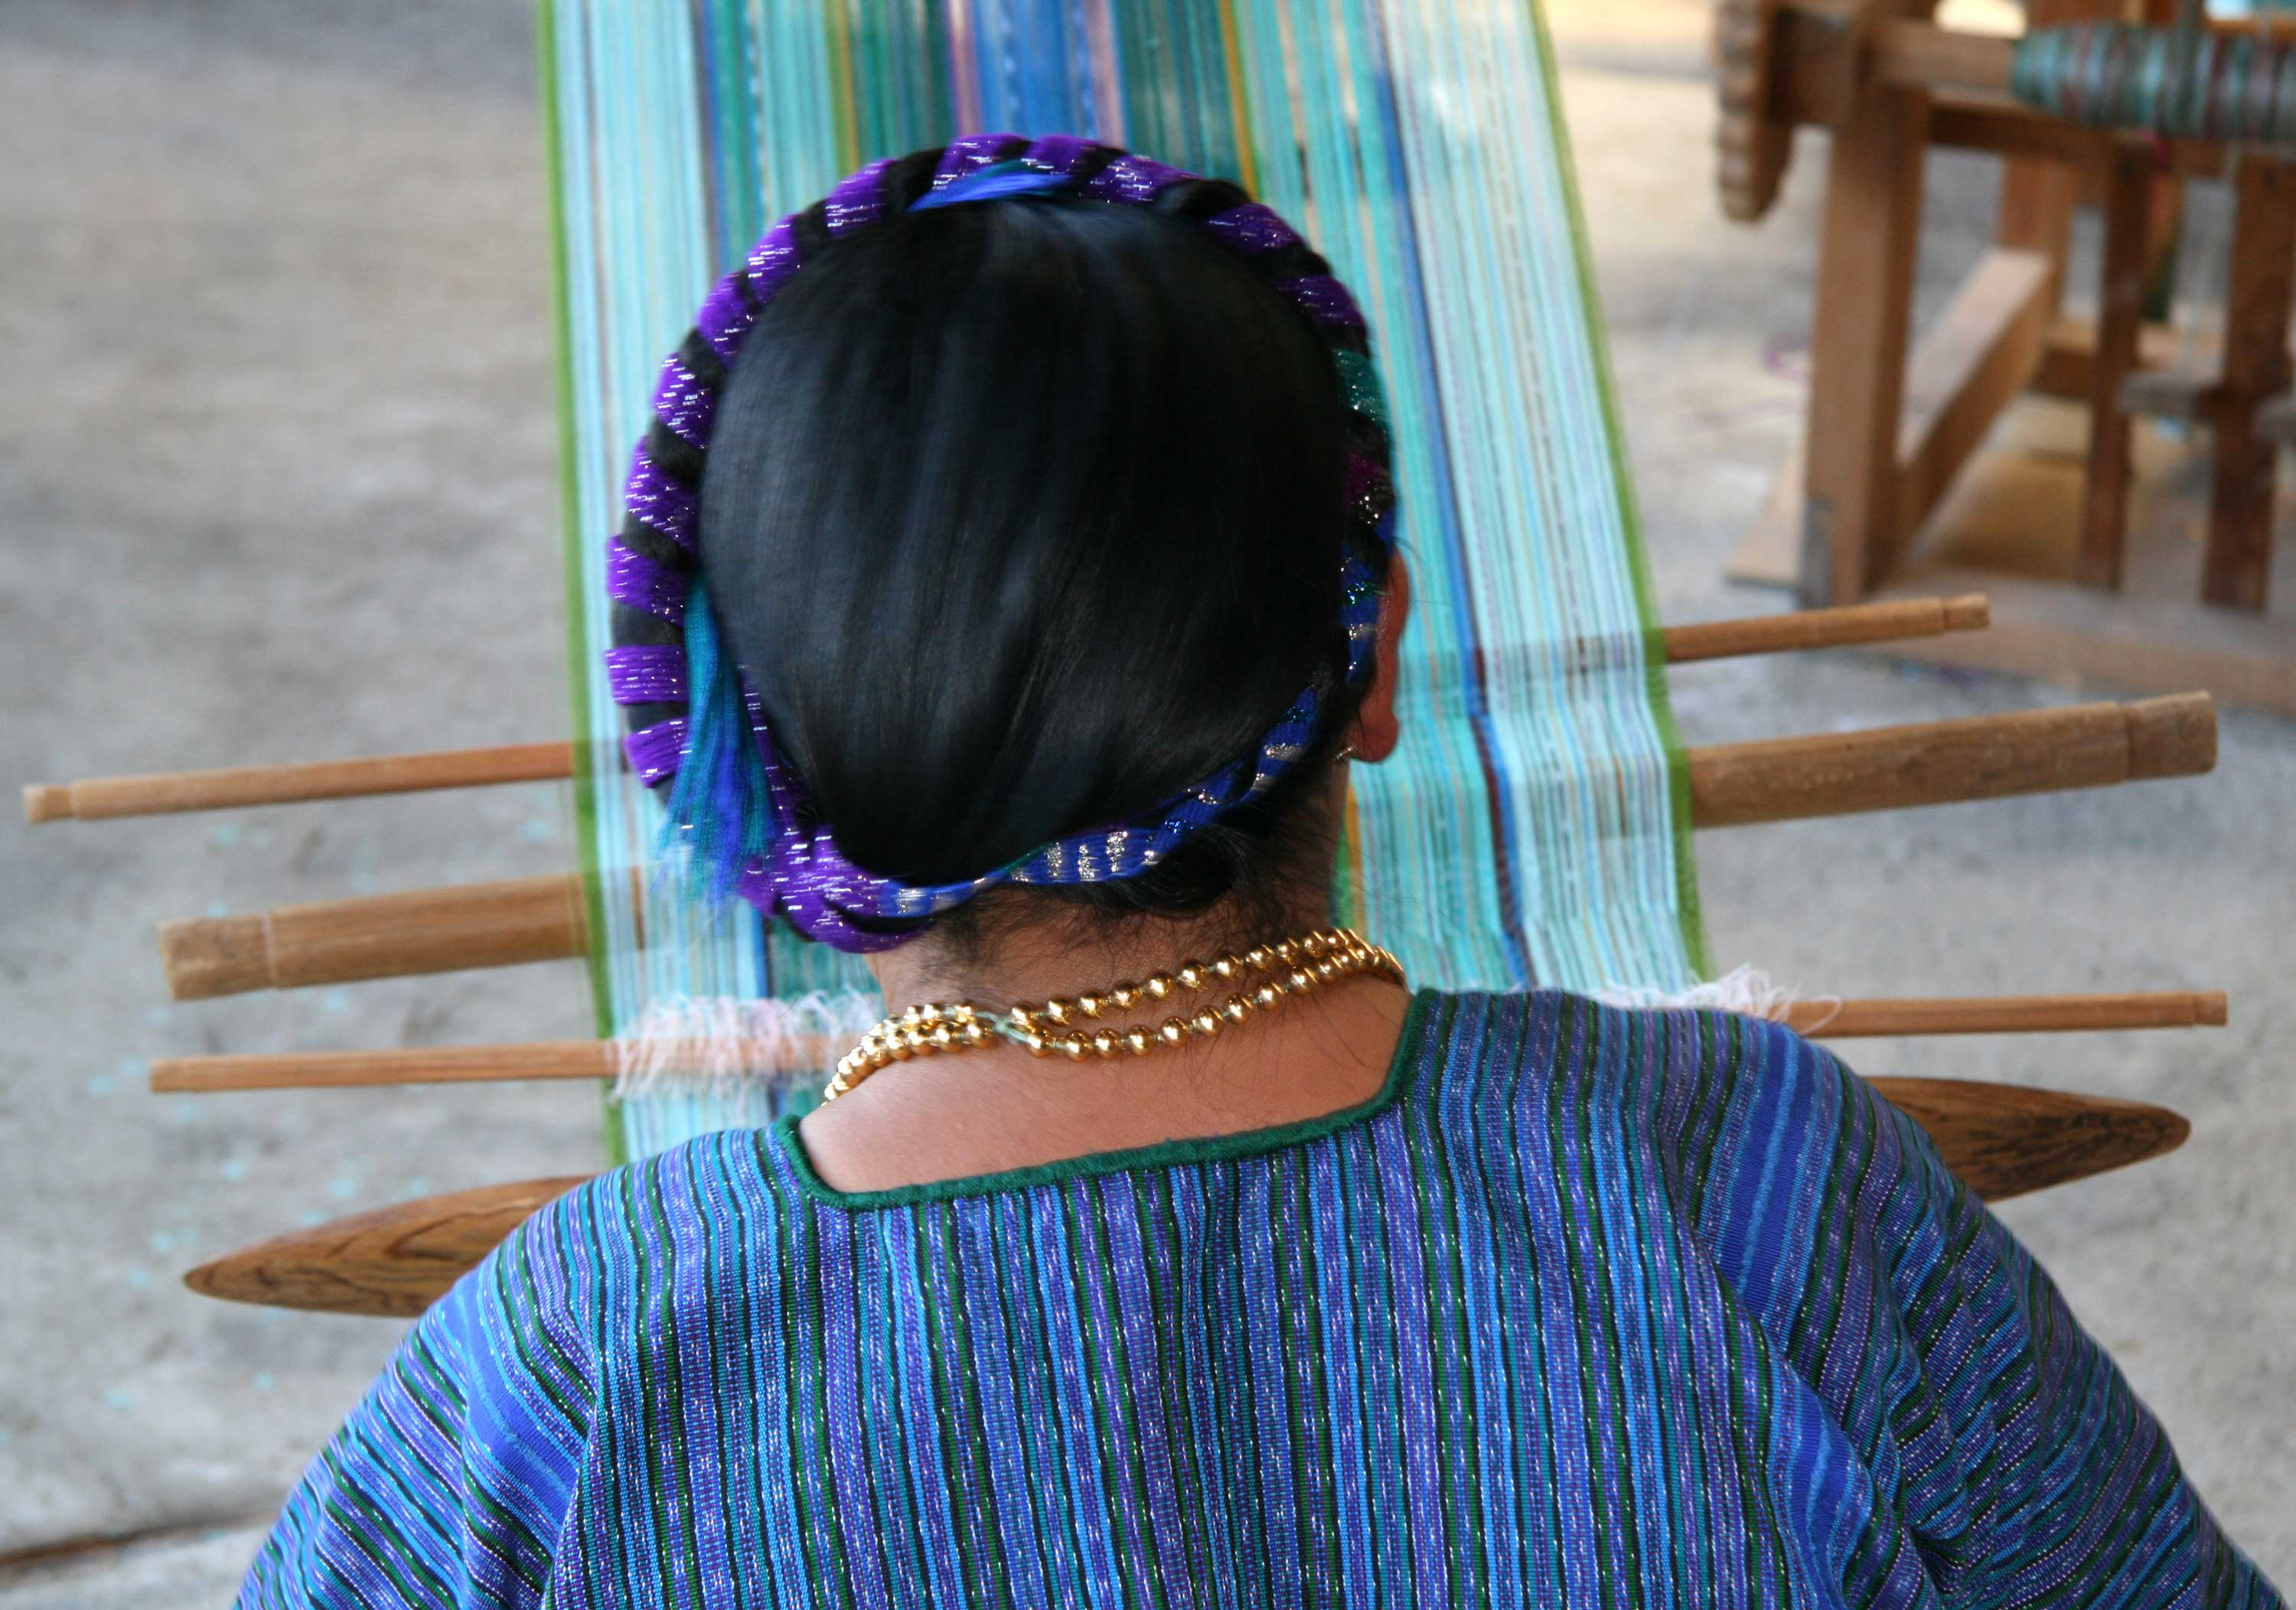 Mayan woman weaving on a traditional backstrap loom in village by the lake Atitlan, Guatemala. (stock image)